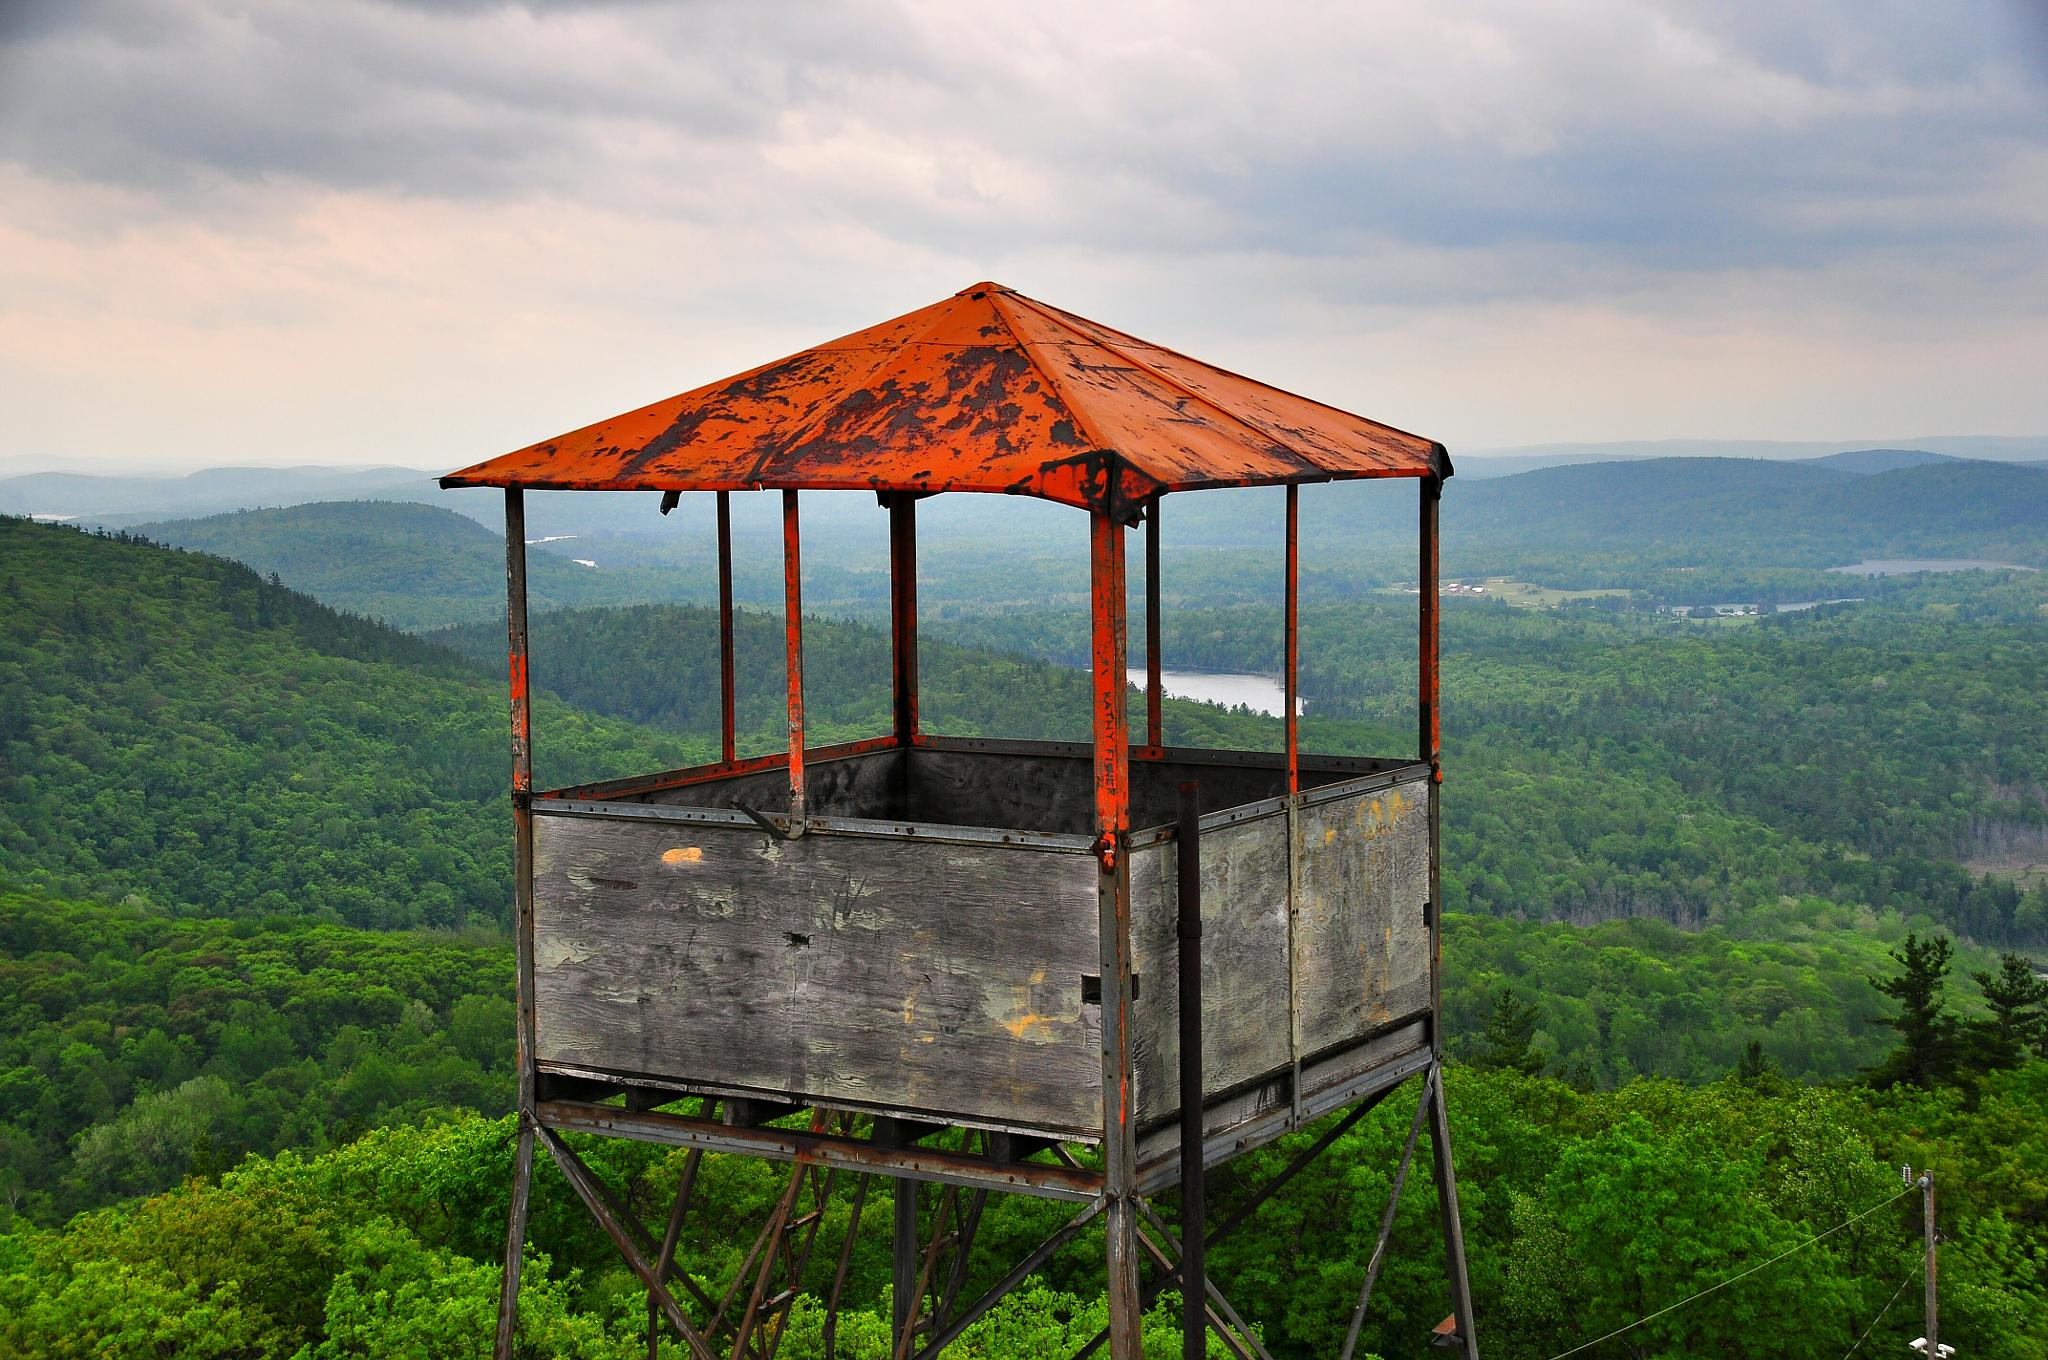 The fire tower by miket1713